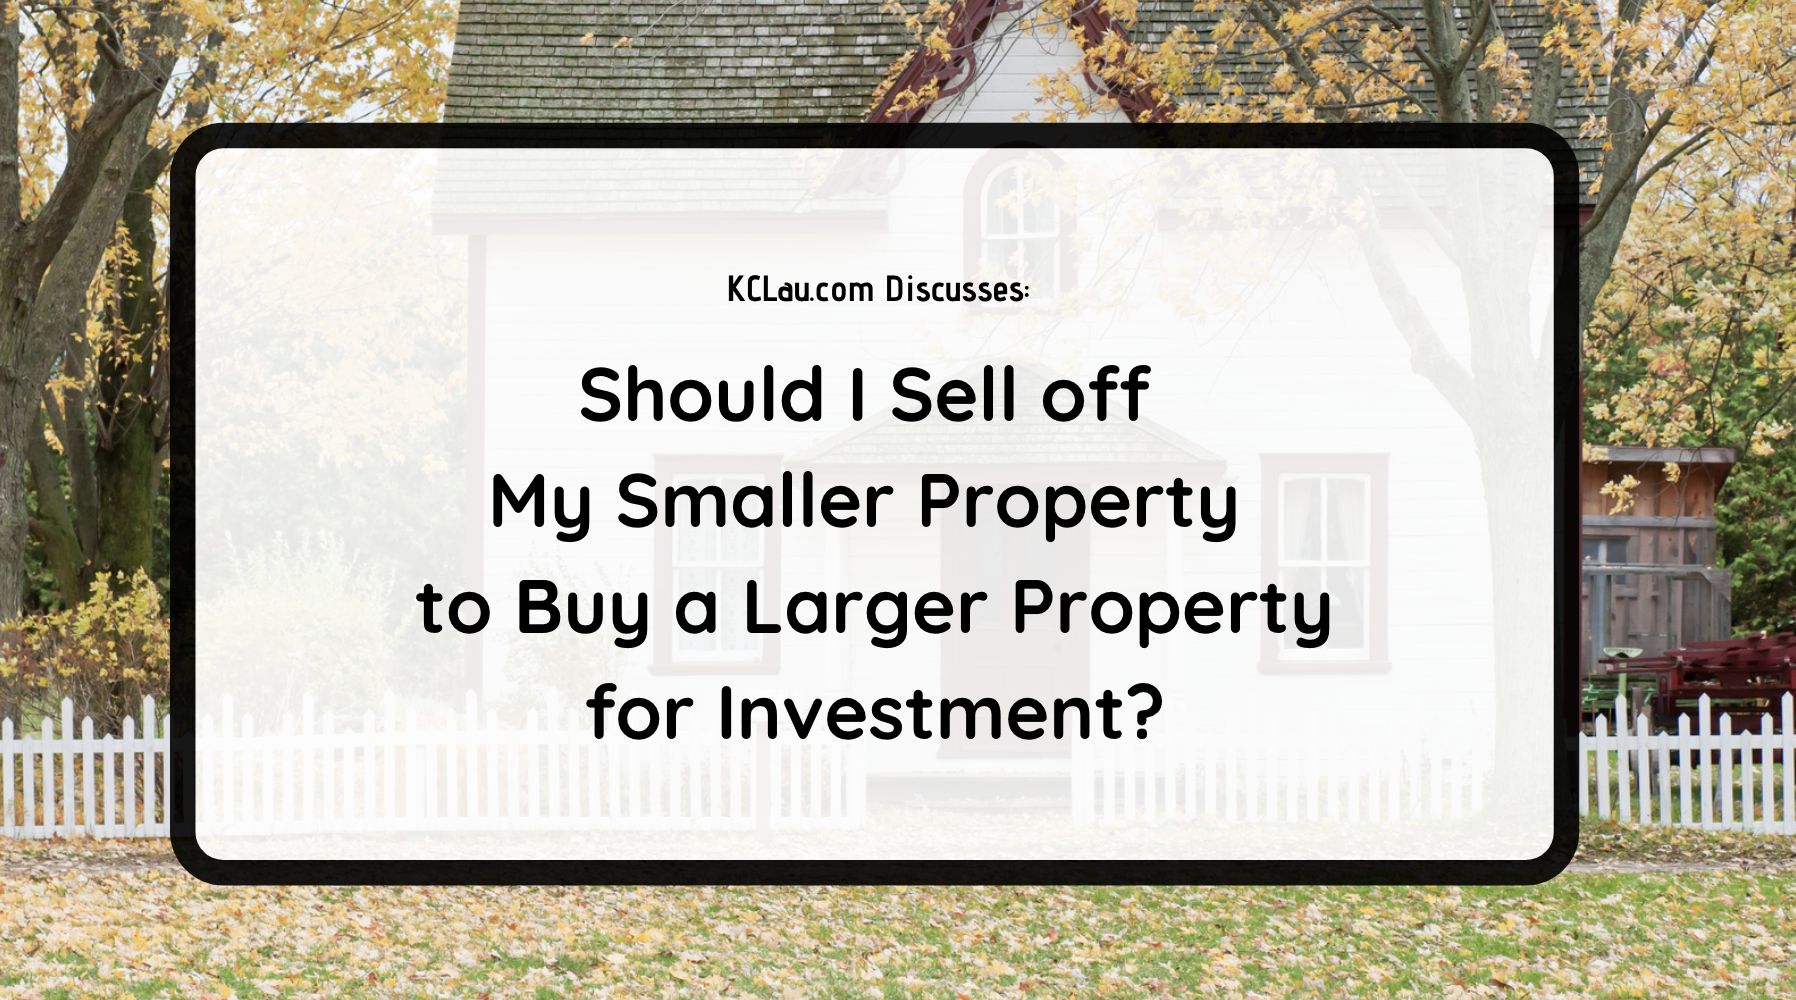 Should I Sell off my Small Property to Raise Funds to Buy a Bigger Property?